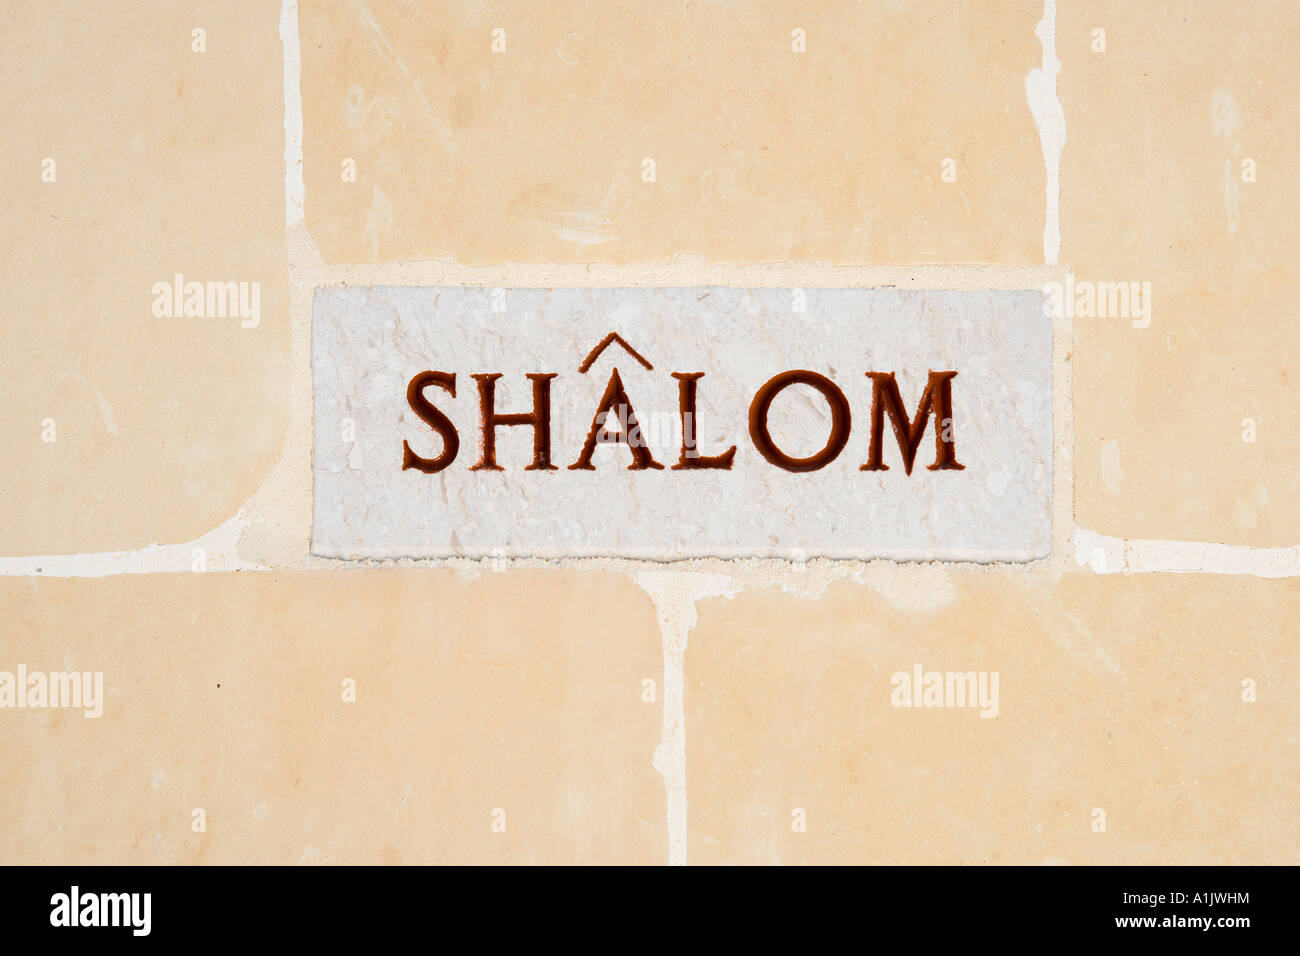 Shalom sign on the wall of a house in Sannat, Gozo, Malta - Stock Image